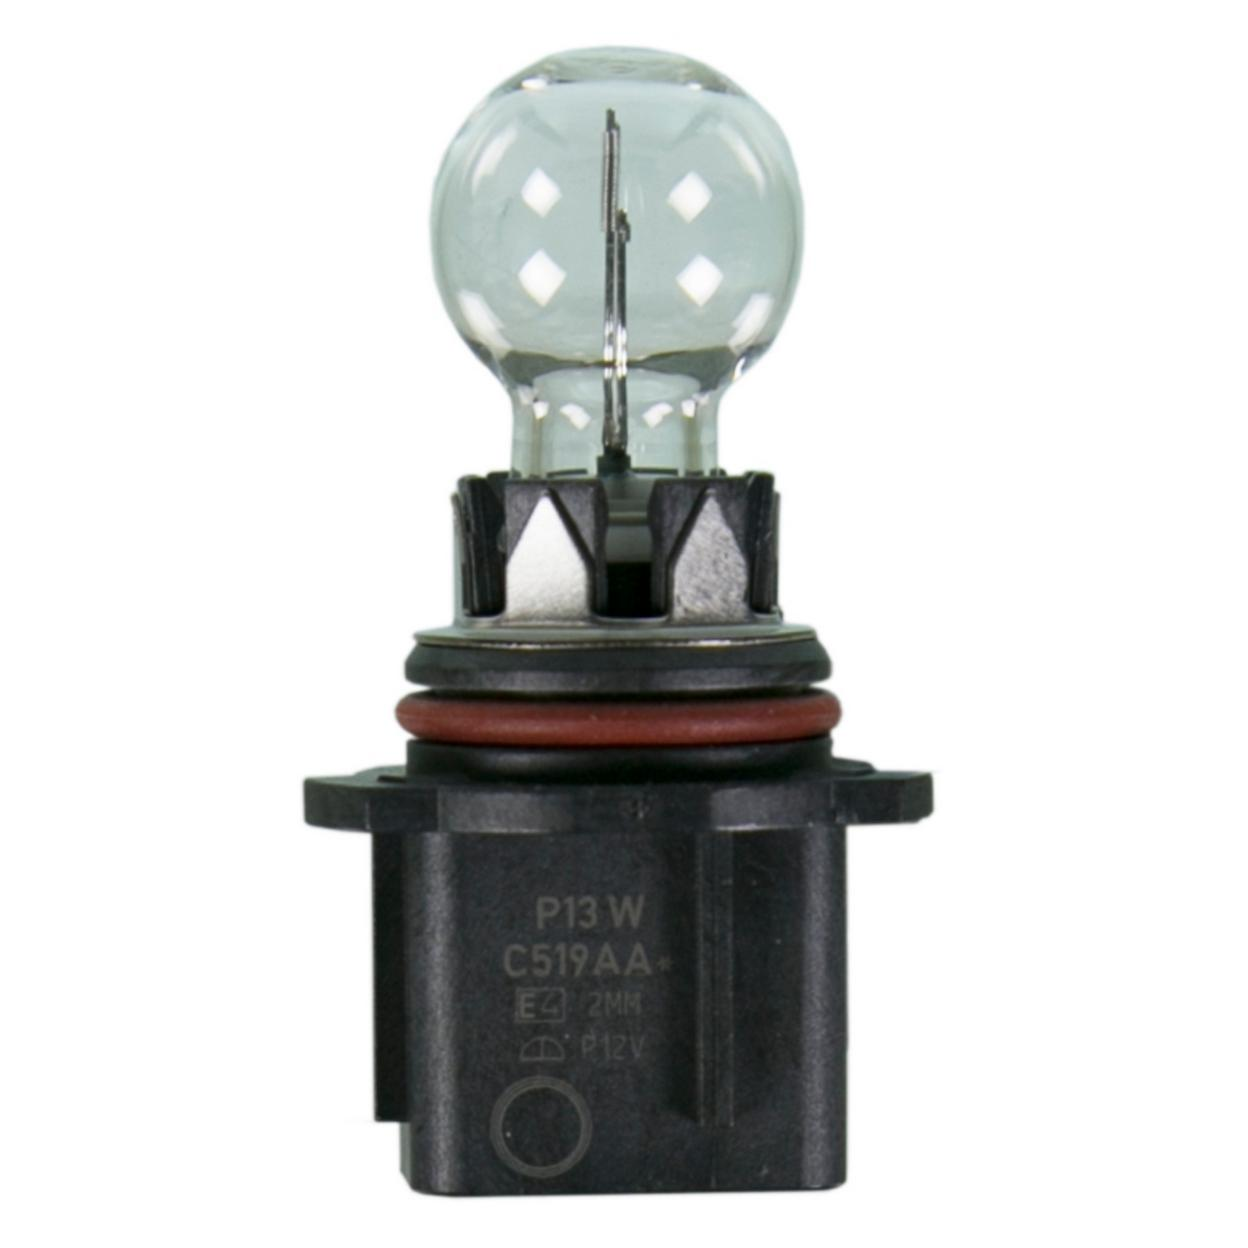 Standard Miniature Lamp